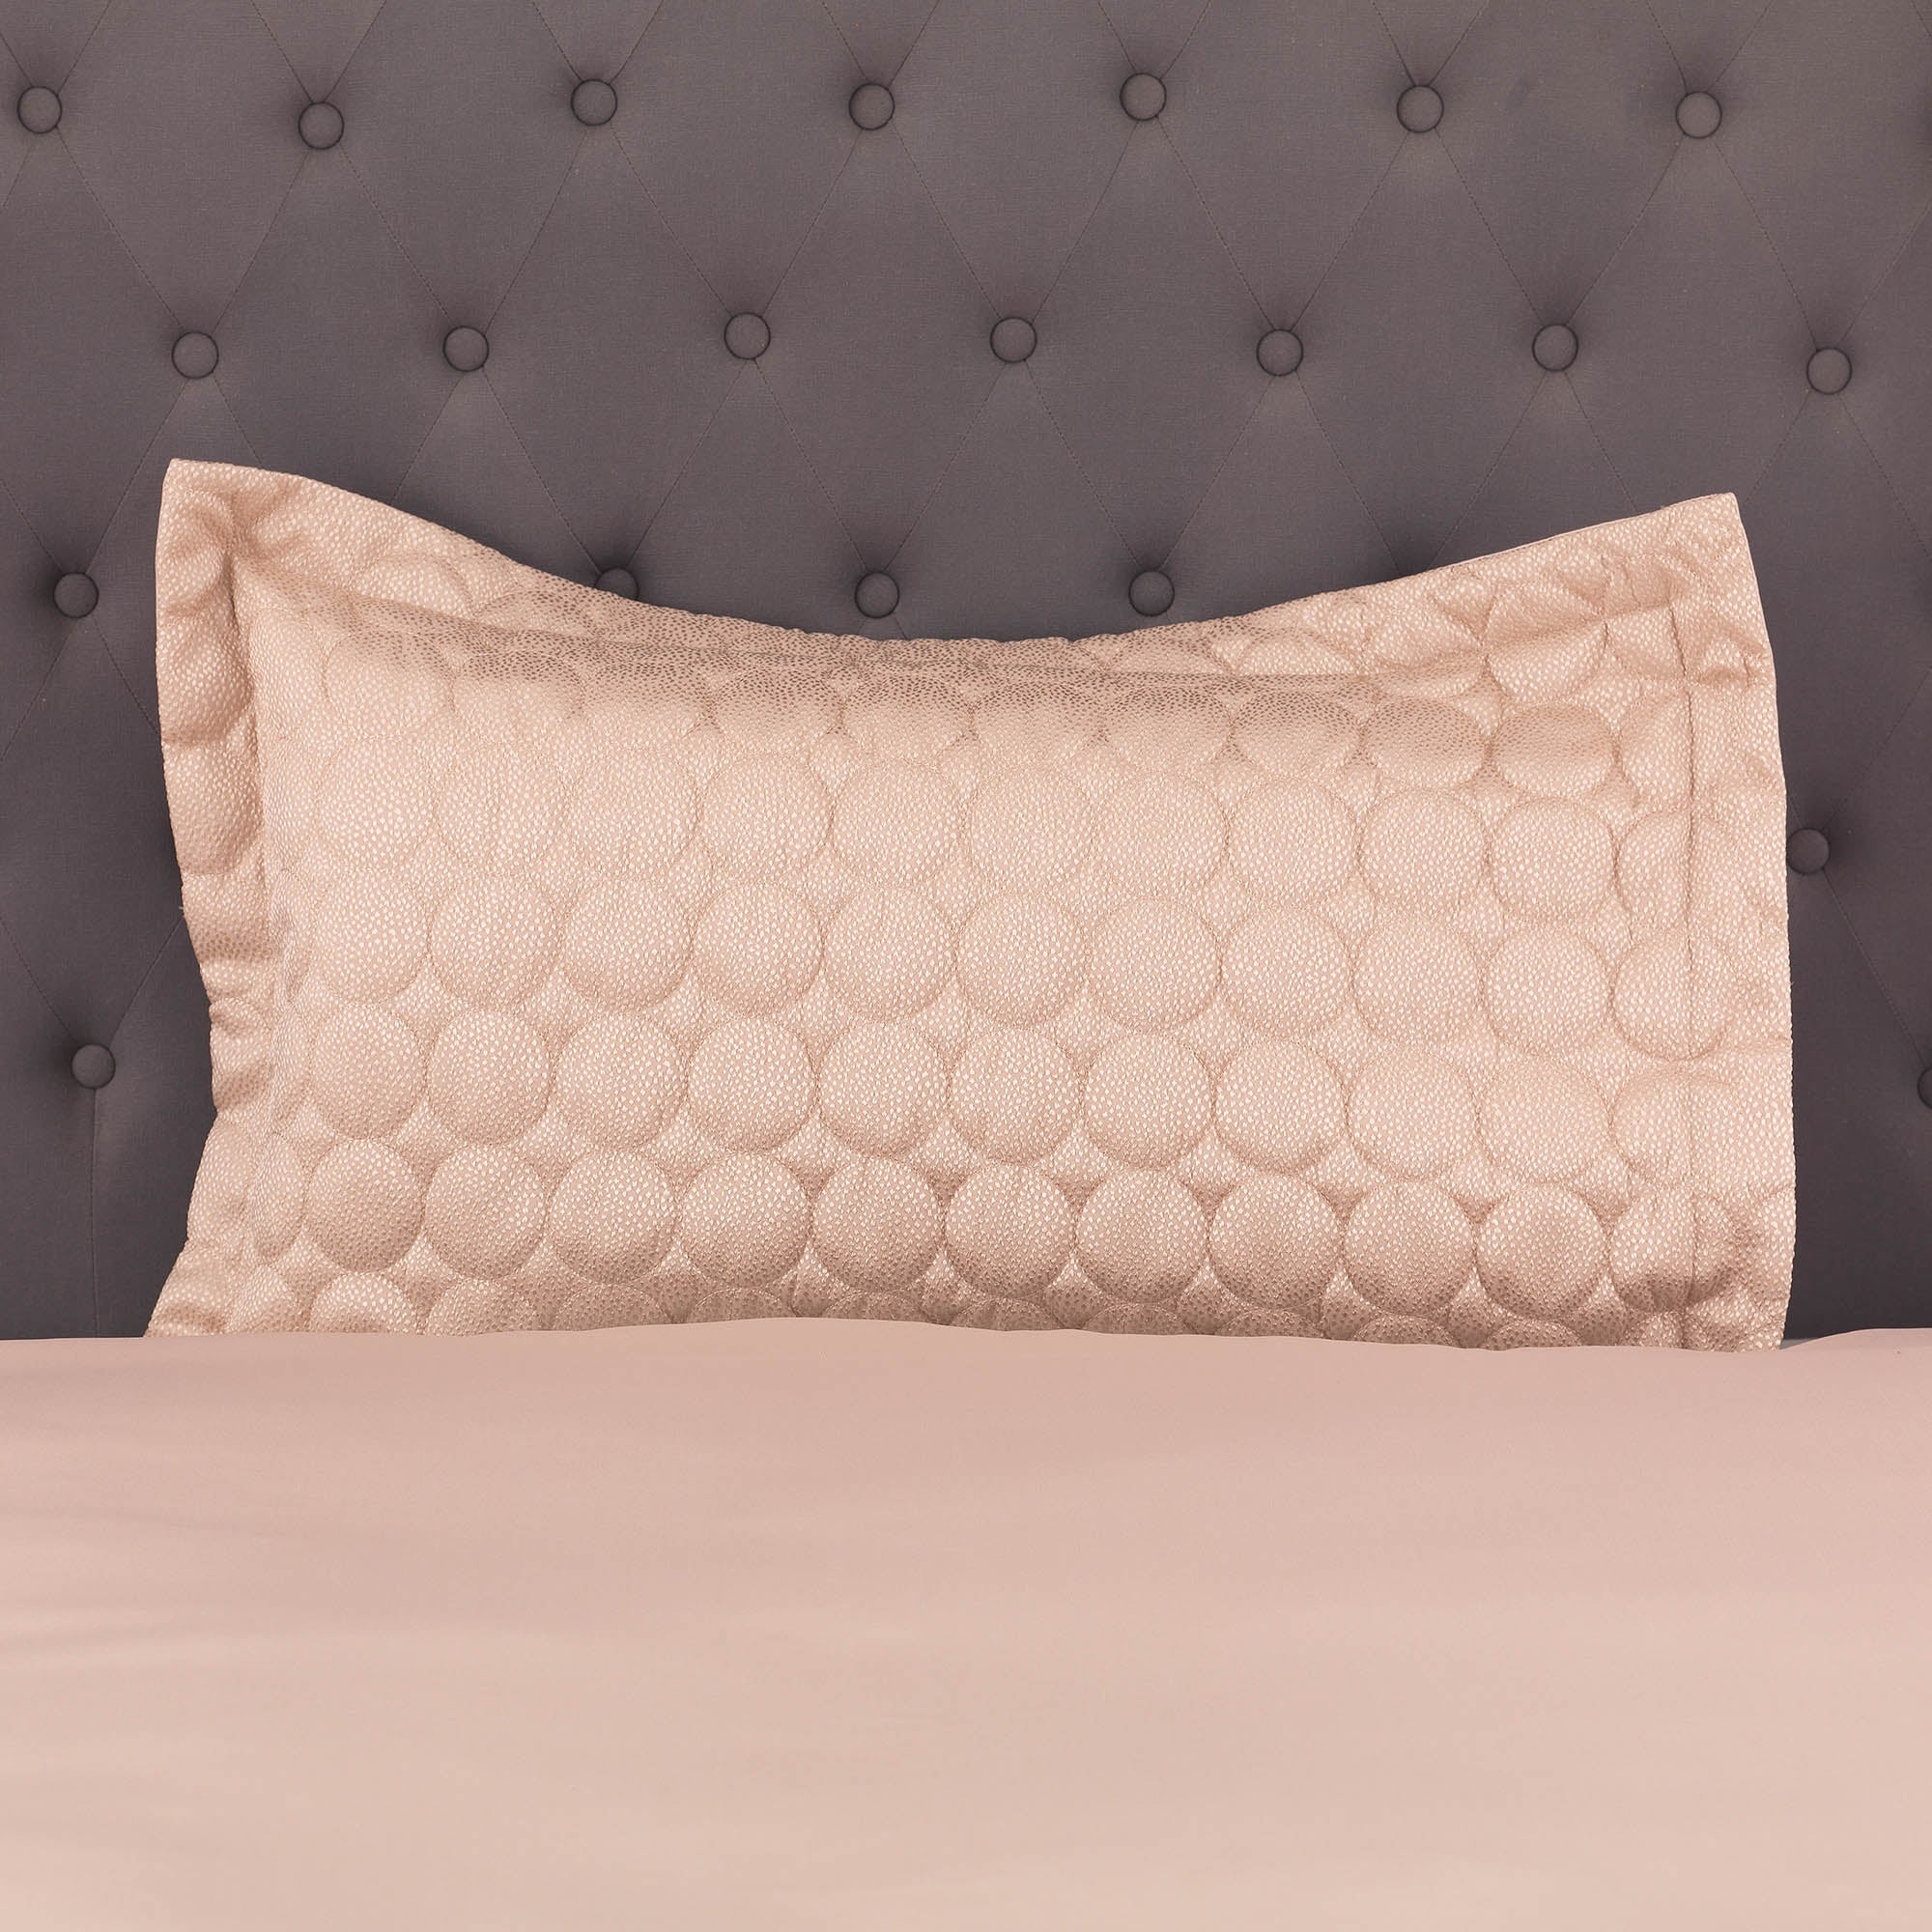 Image of Adele Champagne Pillowsham Champagne (Gold)